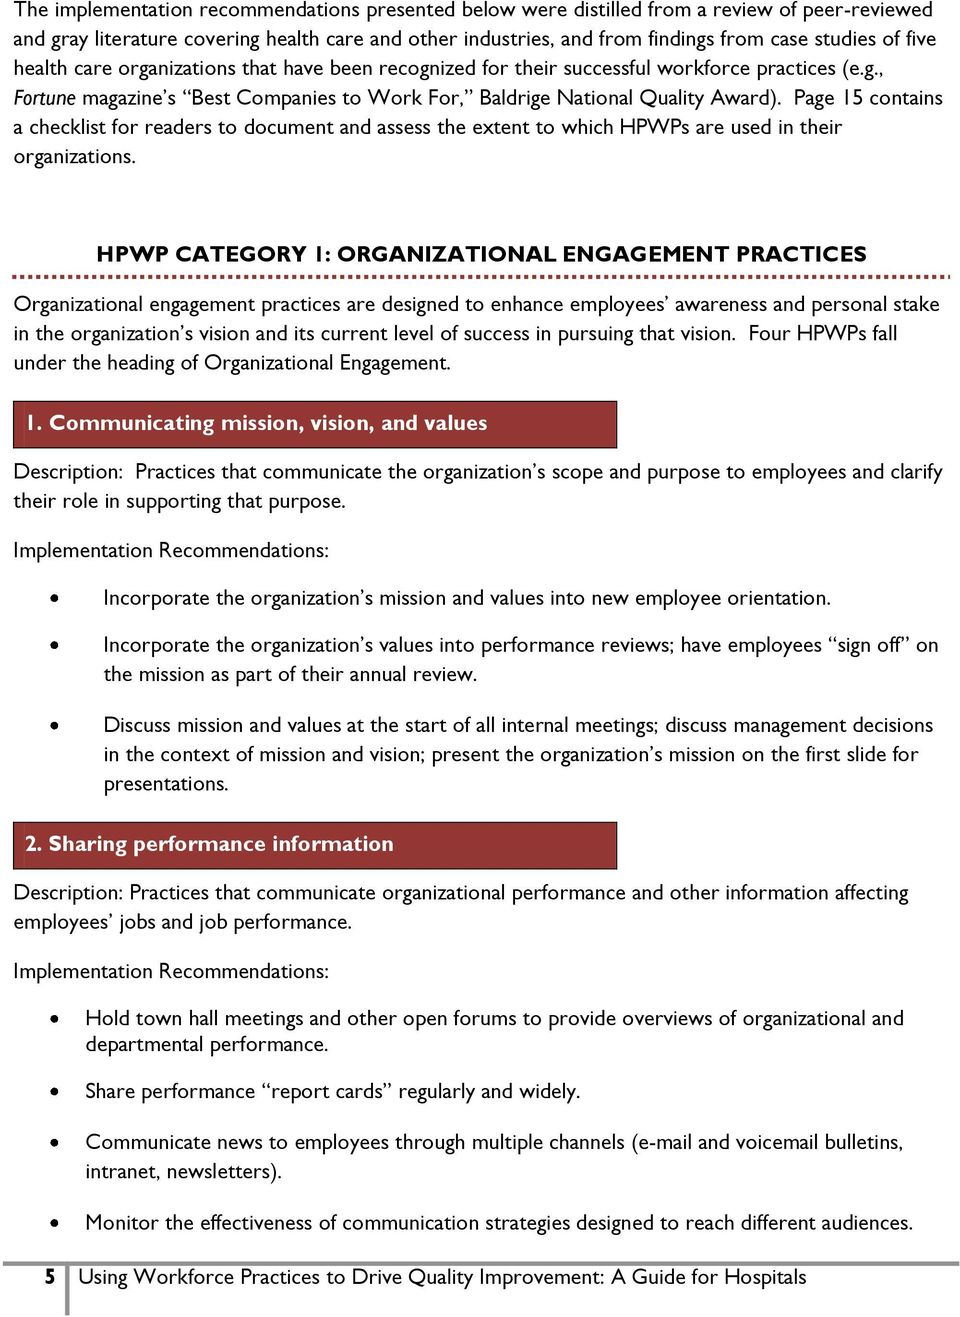 Page 15 contains a checklist for readers to document and assess the extent to which HPWPs are used in their organizations.